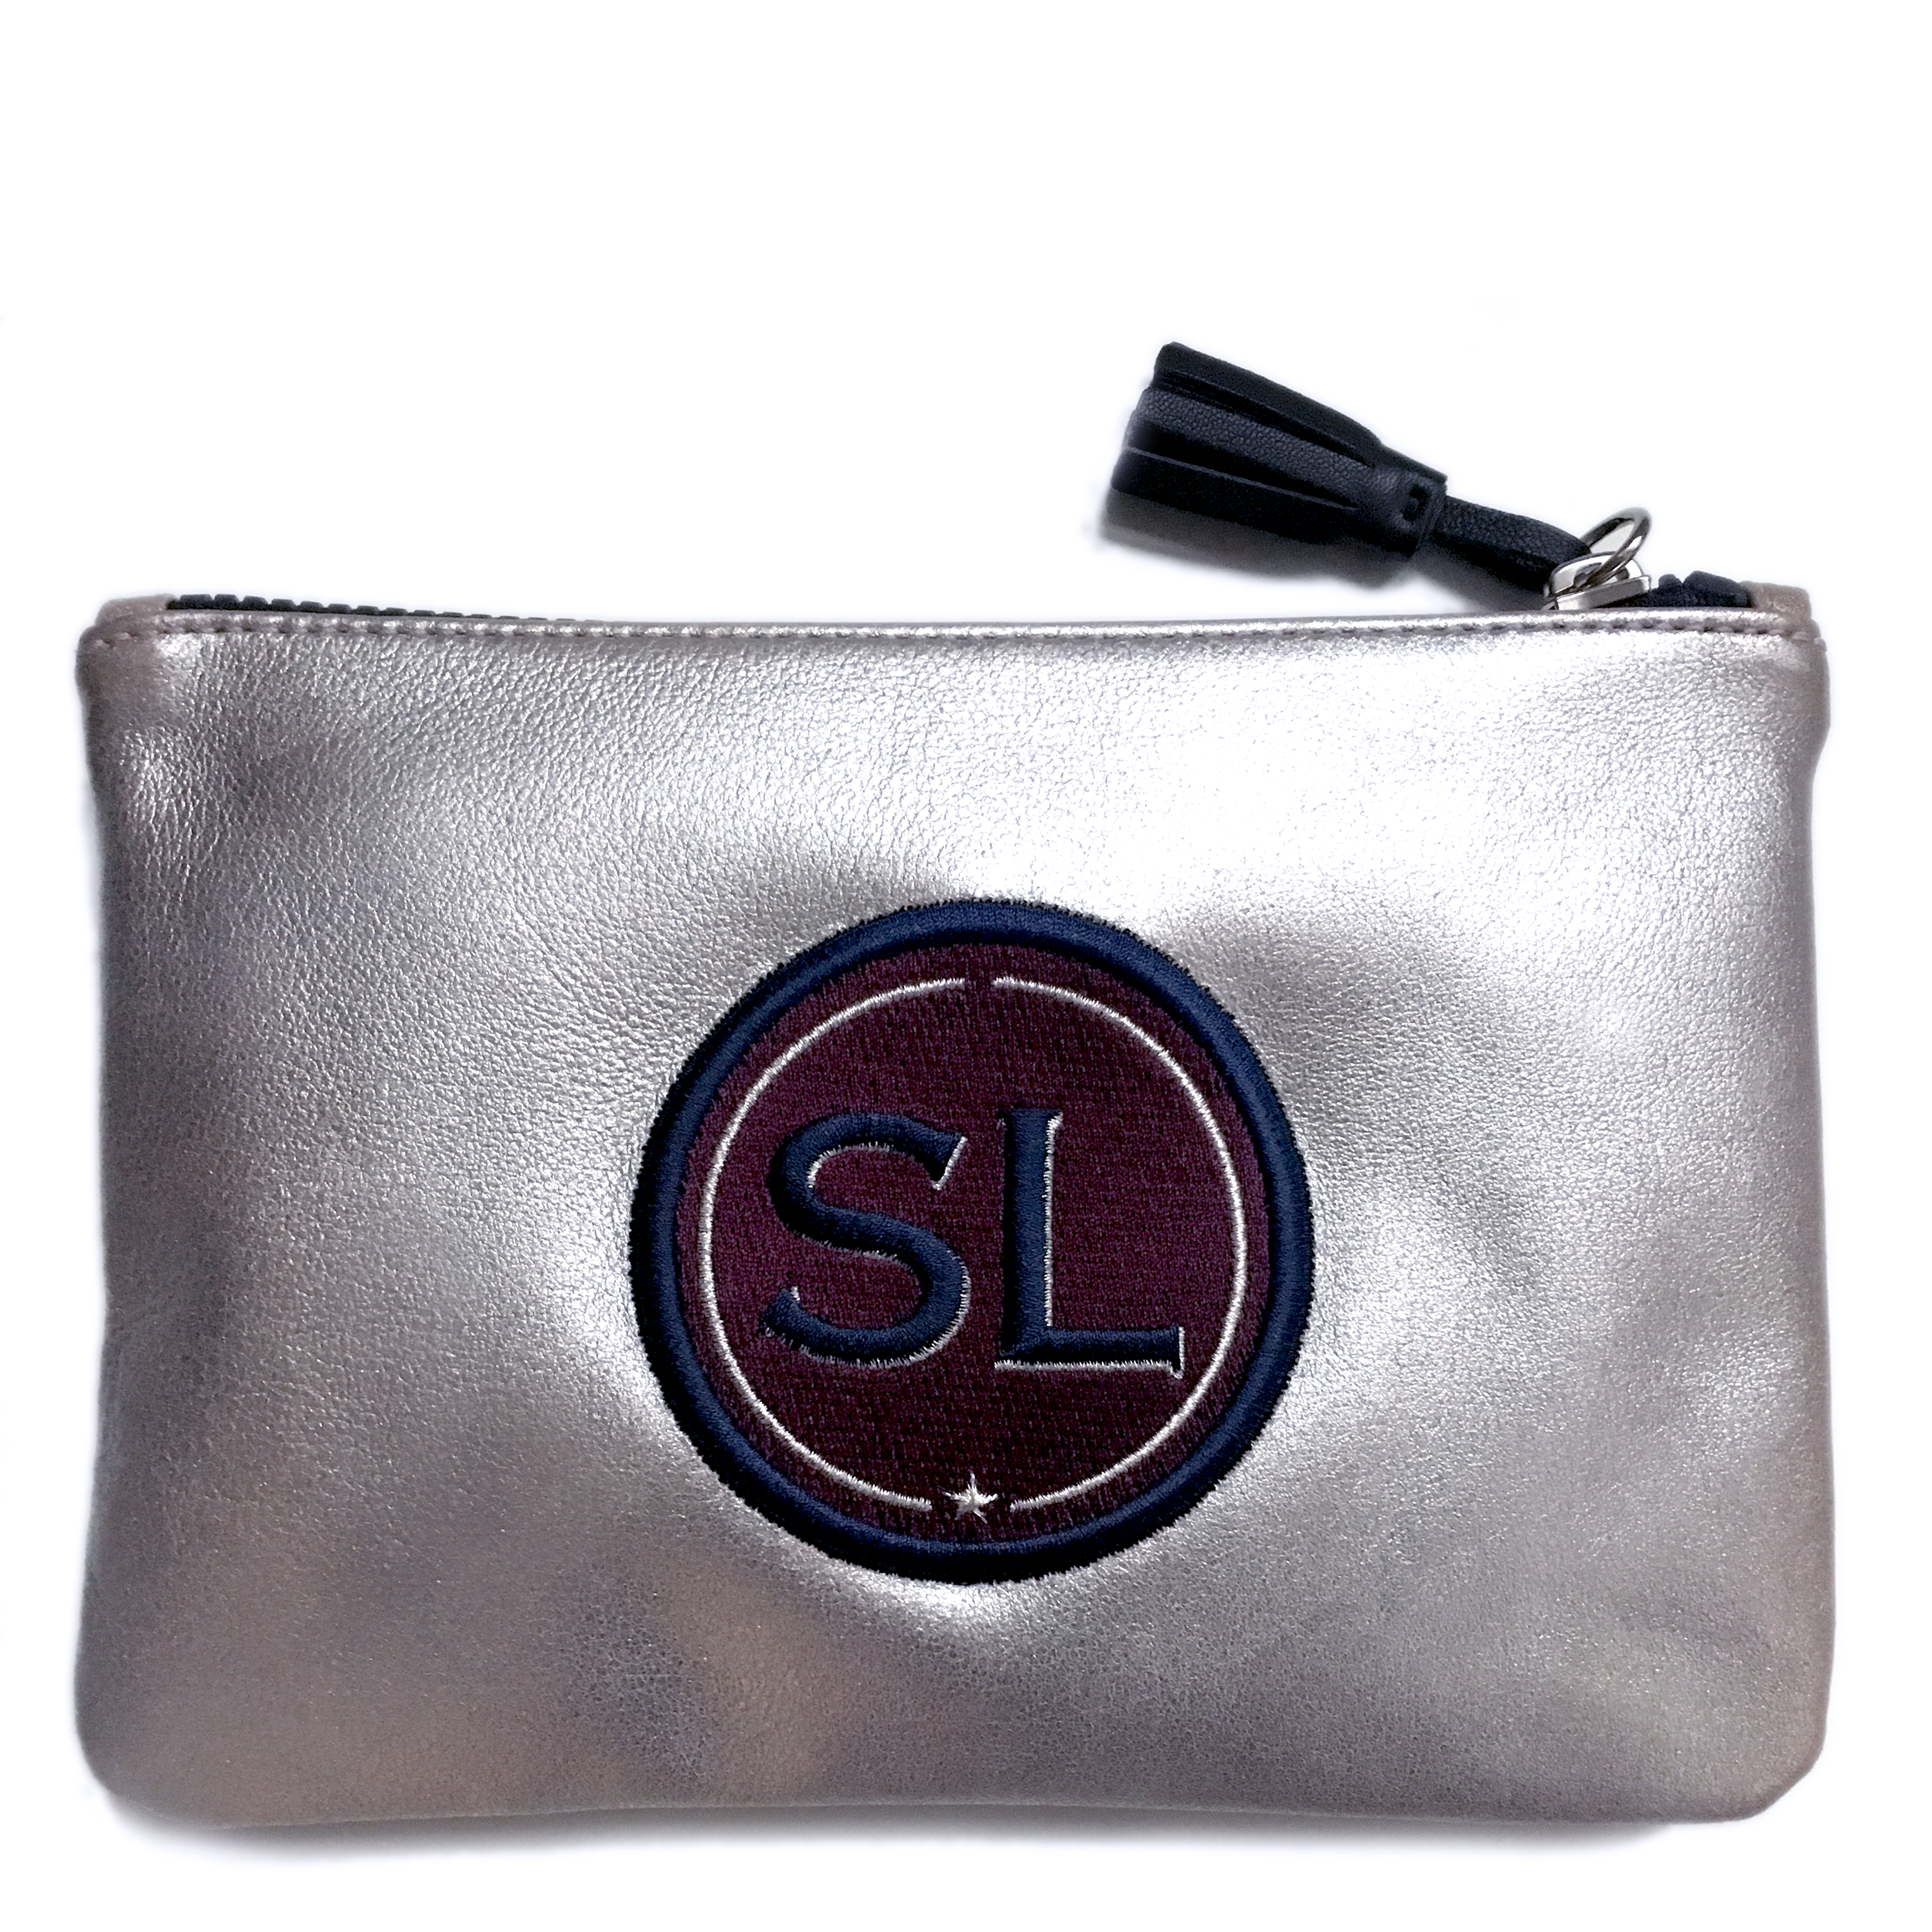 Pouch INITIALS bordeaux · customizable